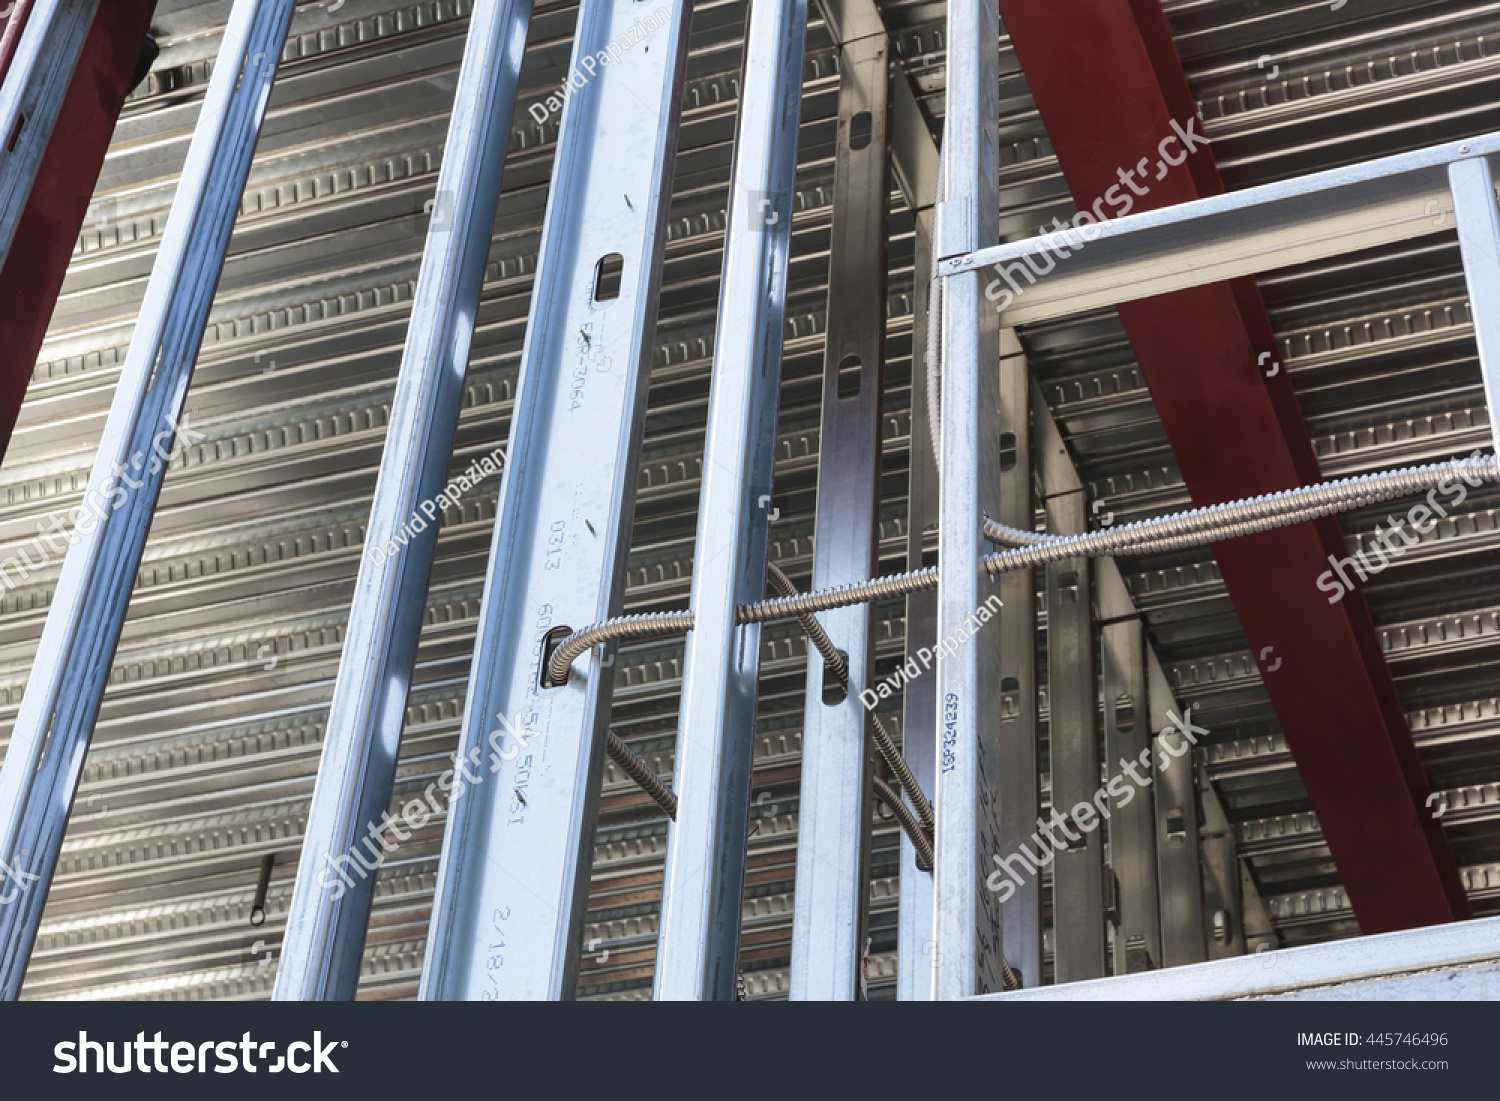 hight resolution of electrical wiring is seen in the frame with metal studs